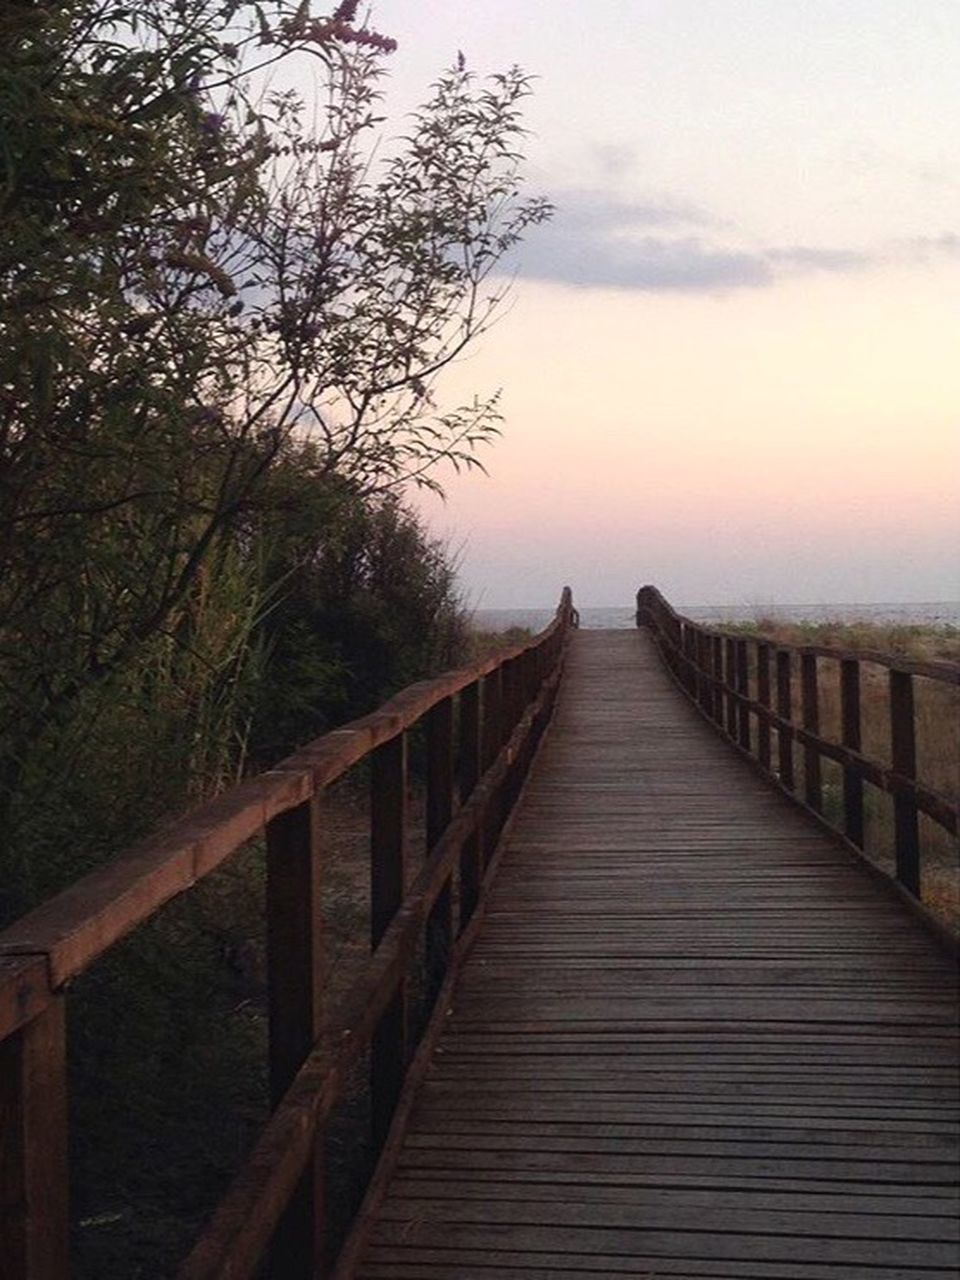 railing, wood - material, sunset, tree, tranquil scene, nature, the way forward, tranquility, beauty in nature, sky, wood paneling, outdoors, scenics, footbridge, no people, sea, water, day